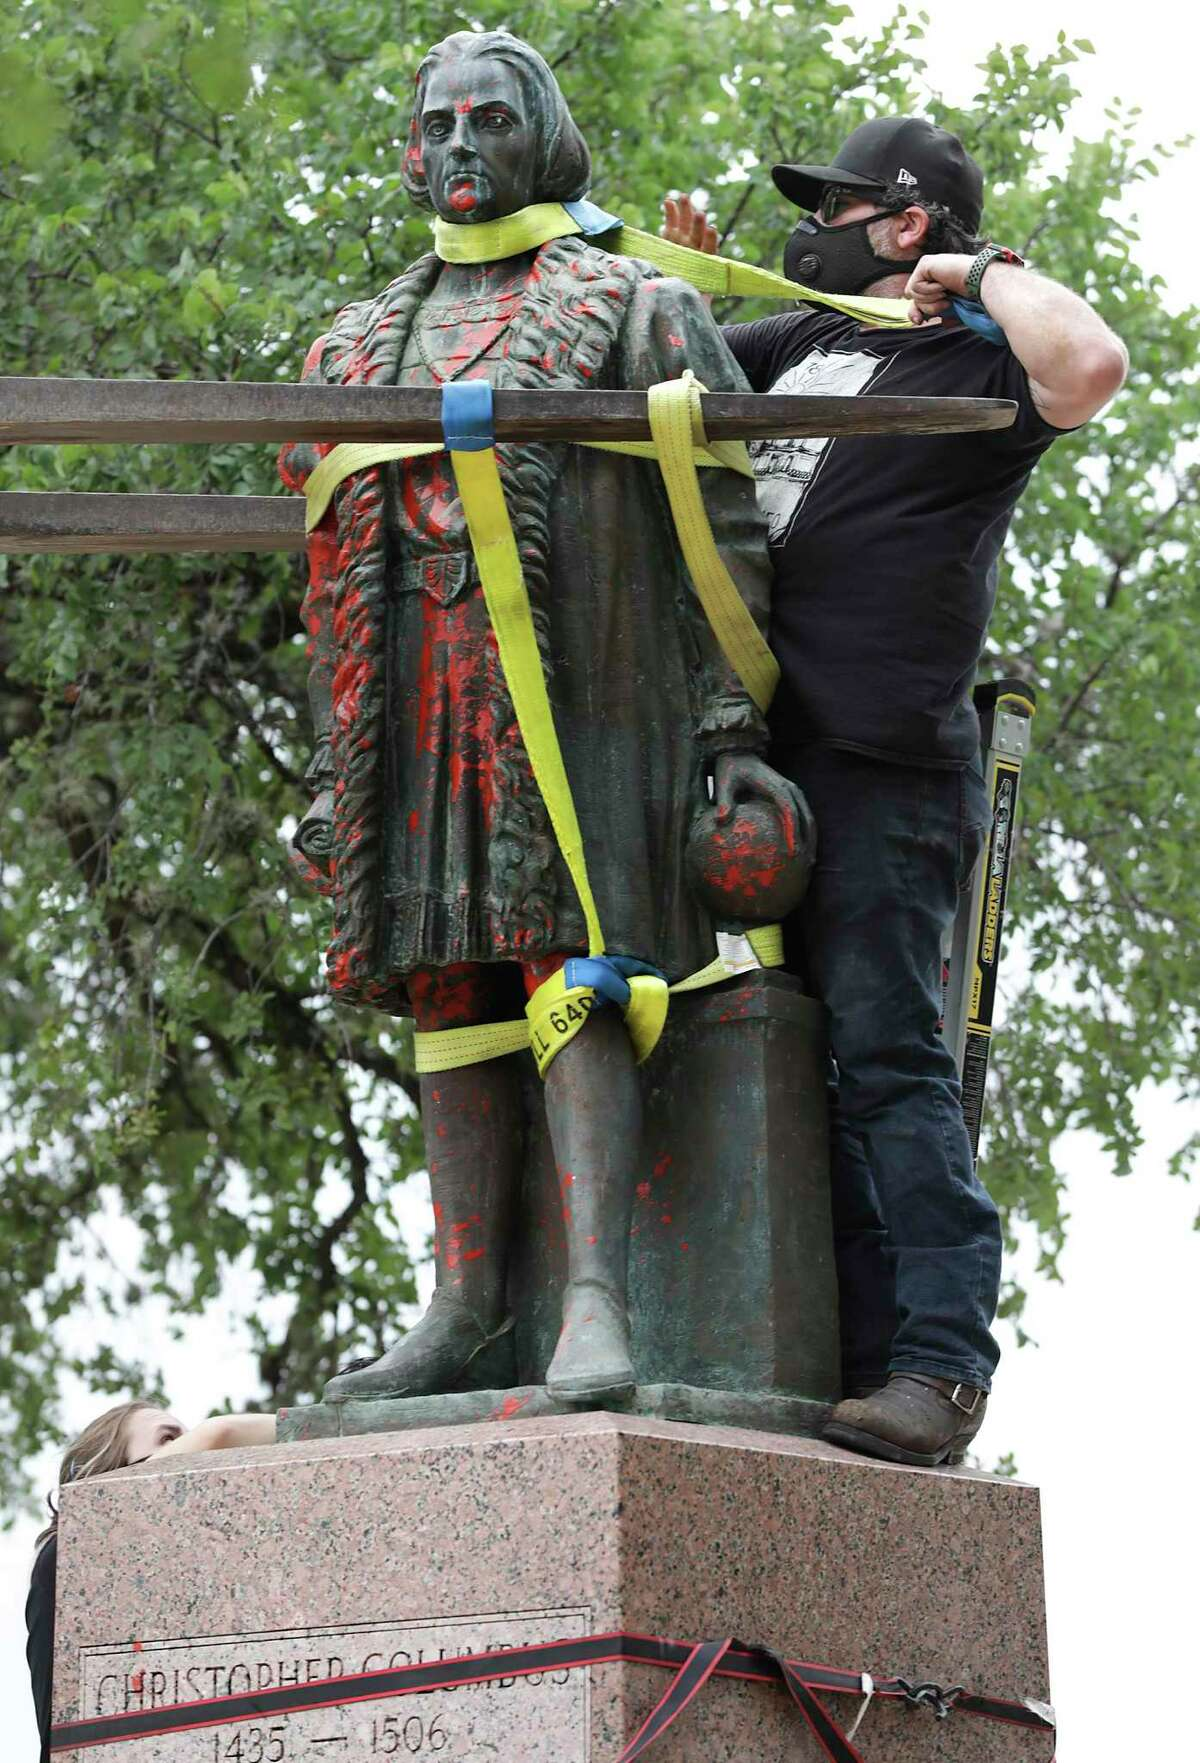 The Columbus statue, in place since 1957, was affixed to the pedestal with bolts that have since rusted out.